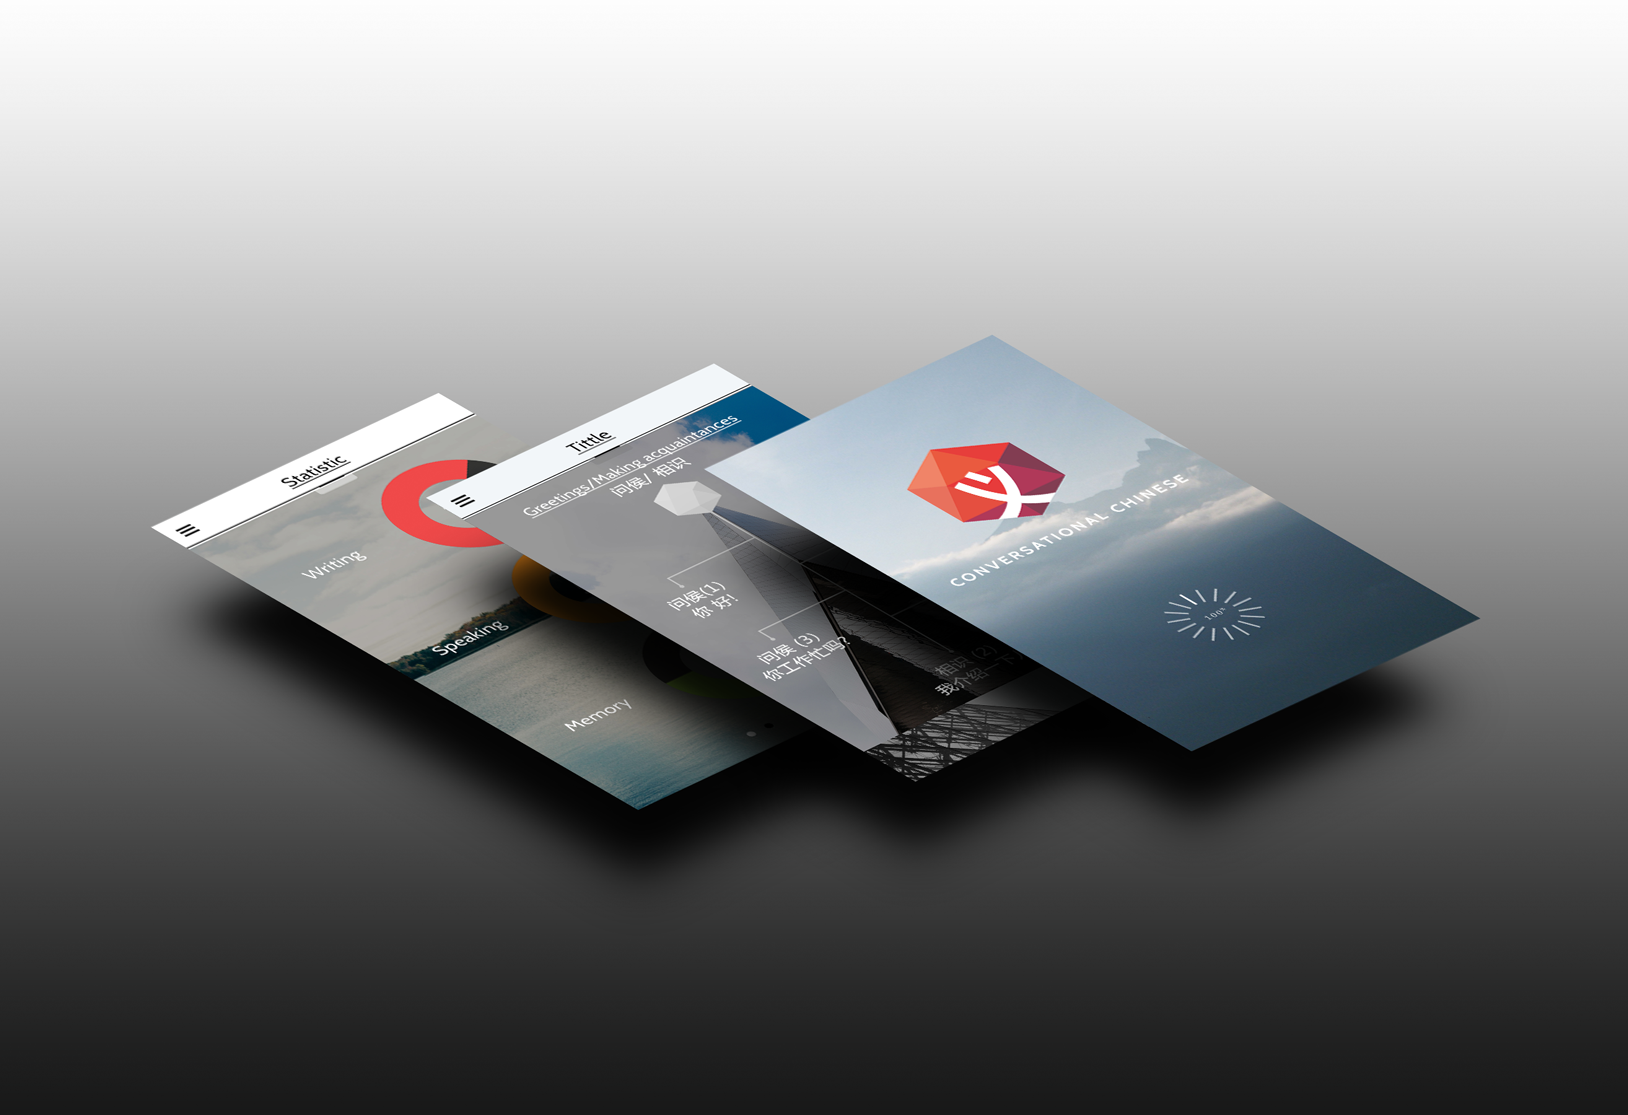 SmartPhone-Screens-presentation-Mock-up